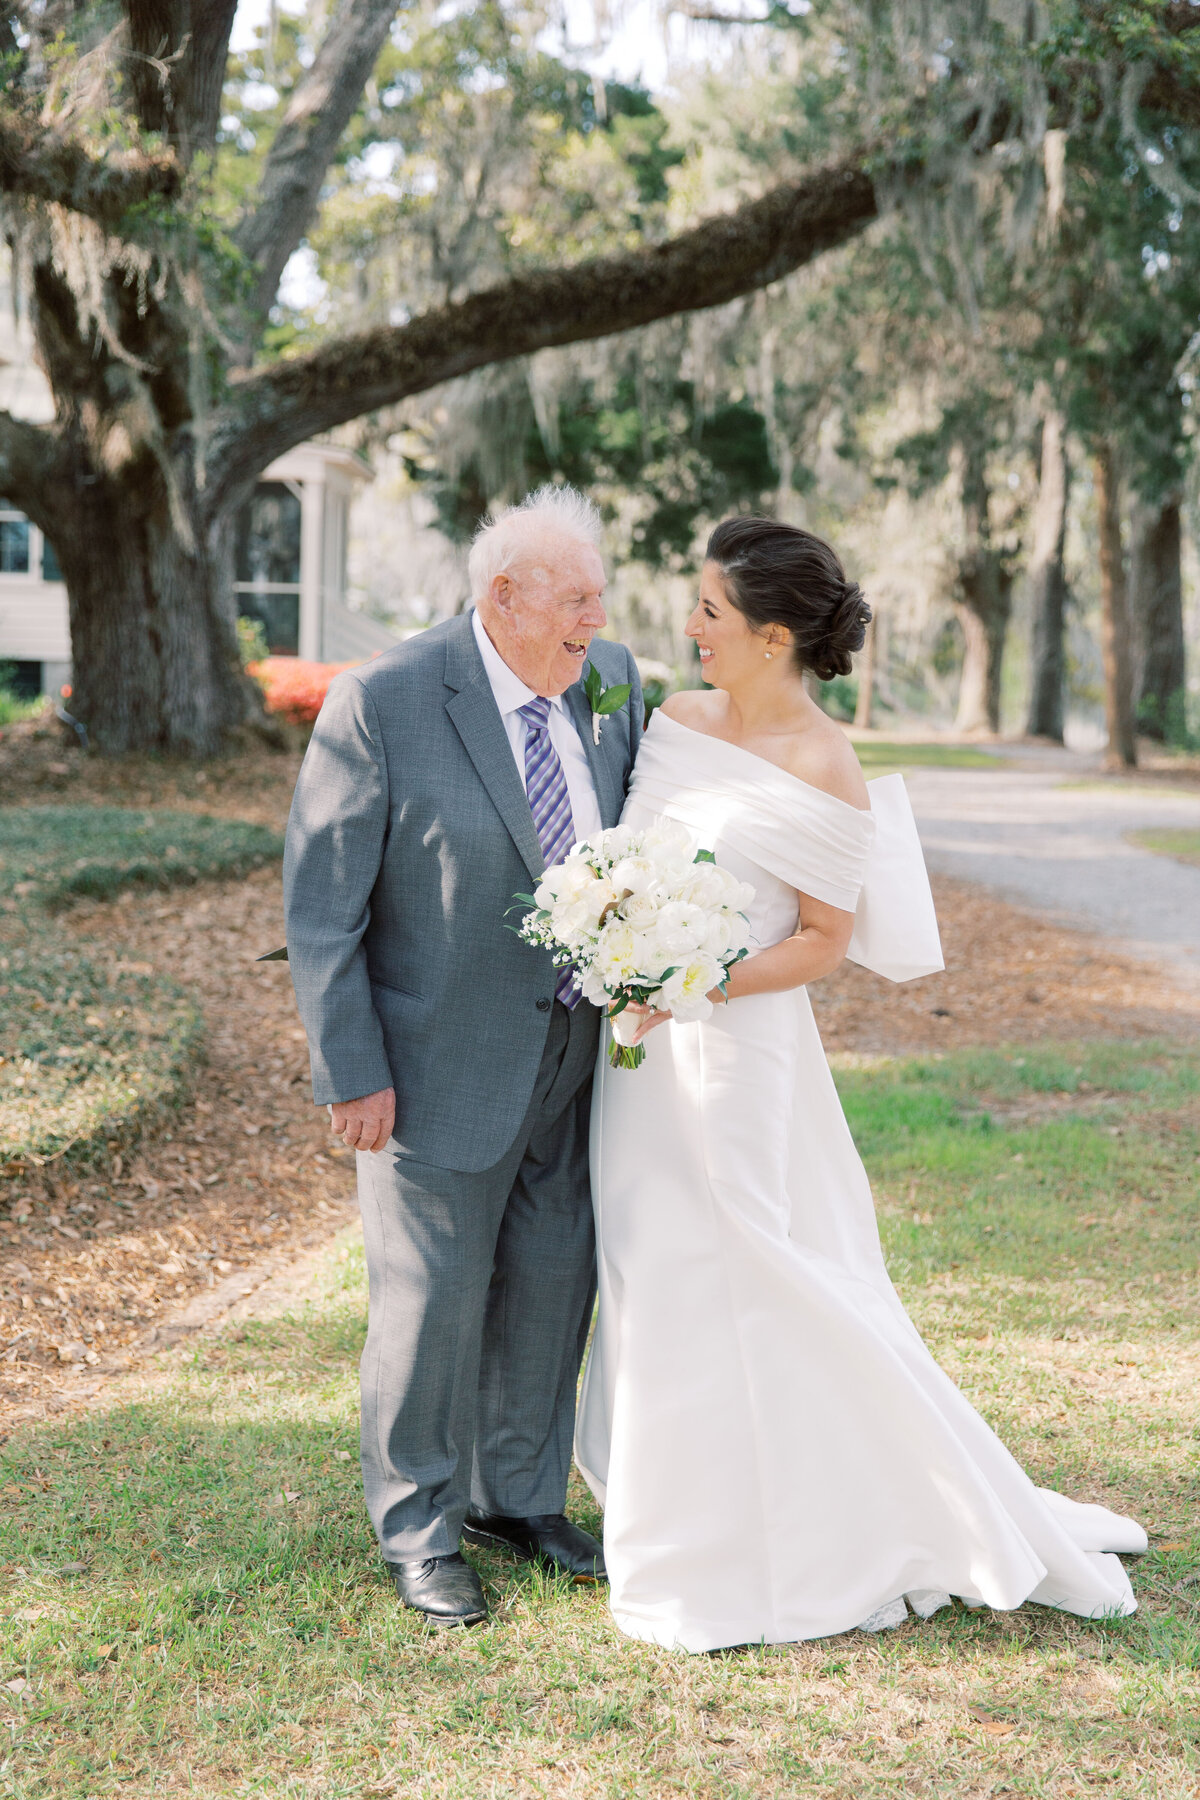 Powell_Oldfield_River_Club_Bluffton_South_Carolina_Beaufort_Savannah_Wedding_Jacksonville_Florida_Devon_Donnahoo_Photography_0709